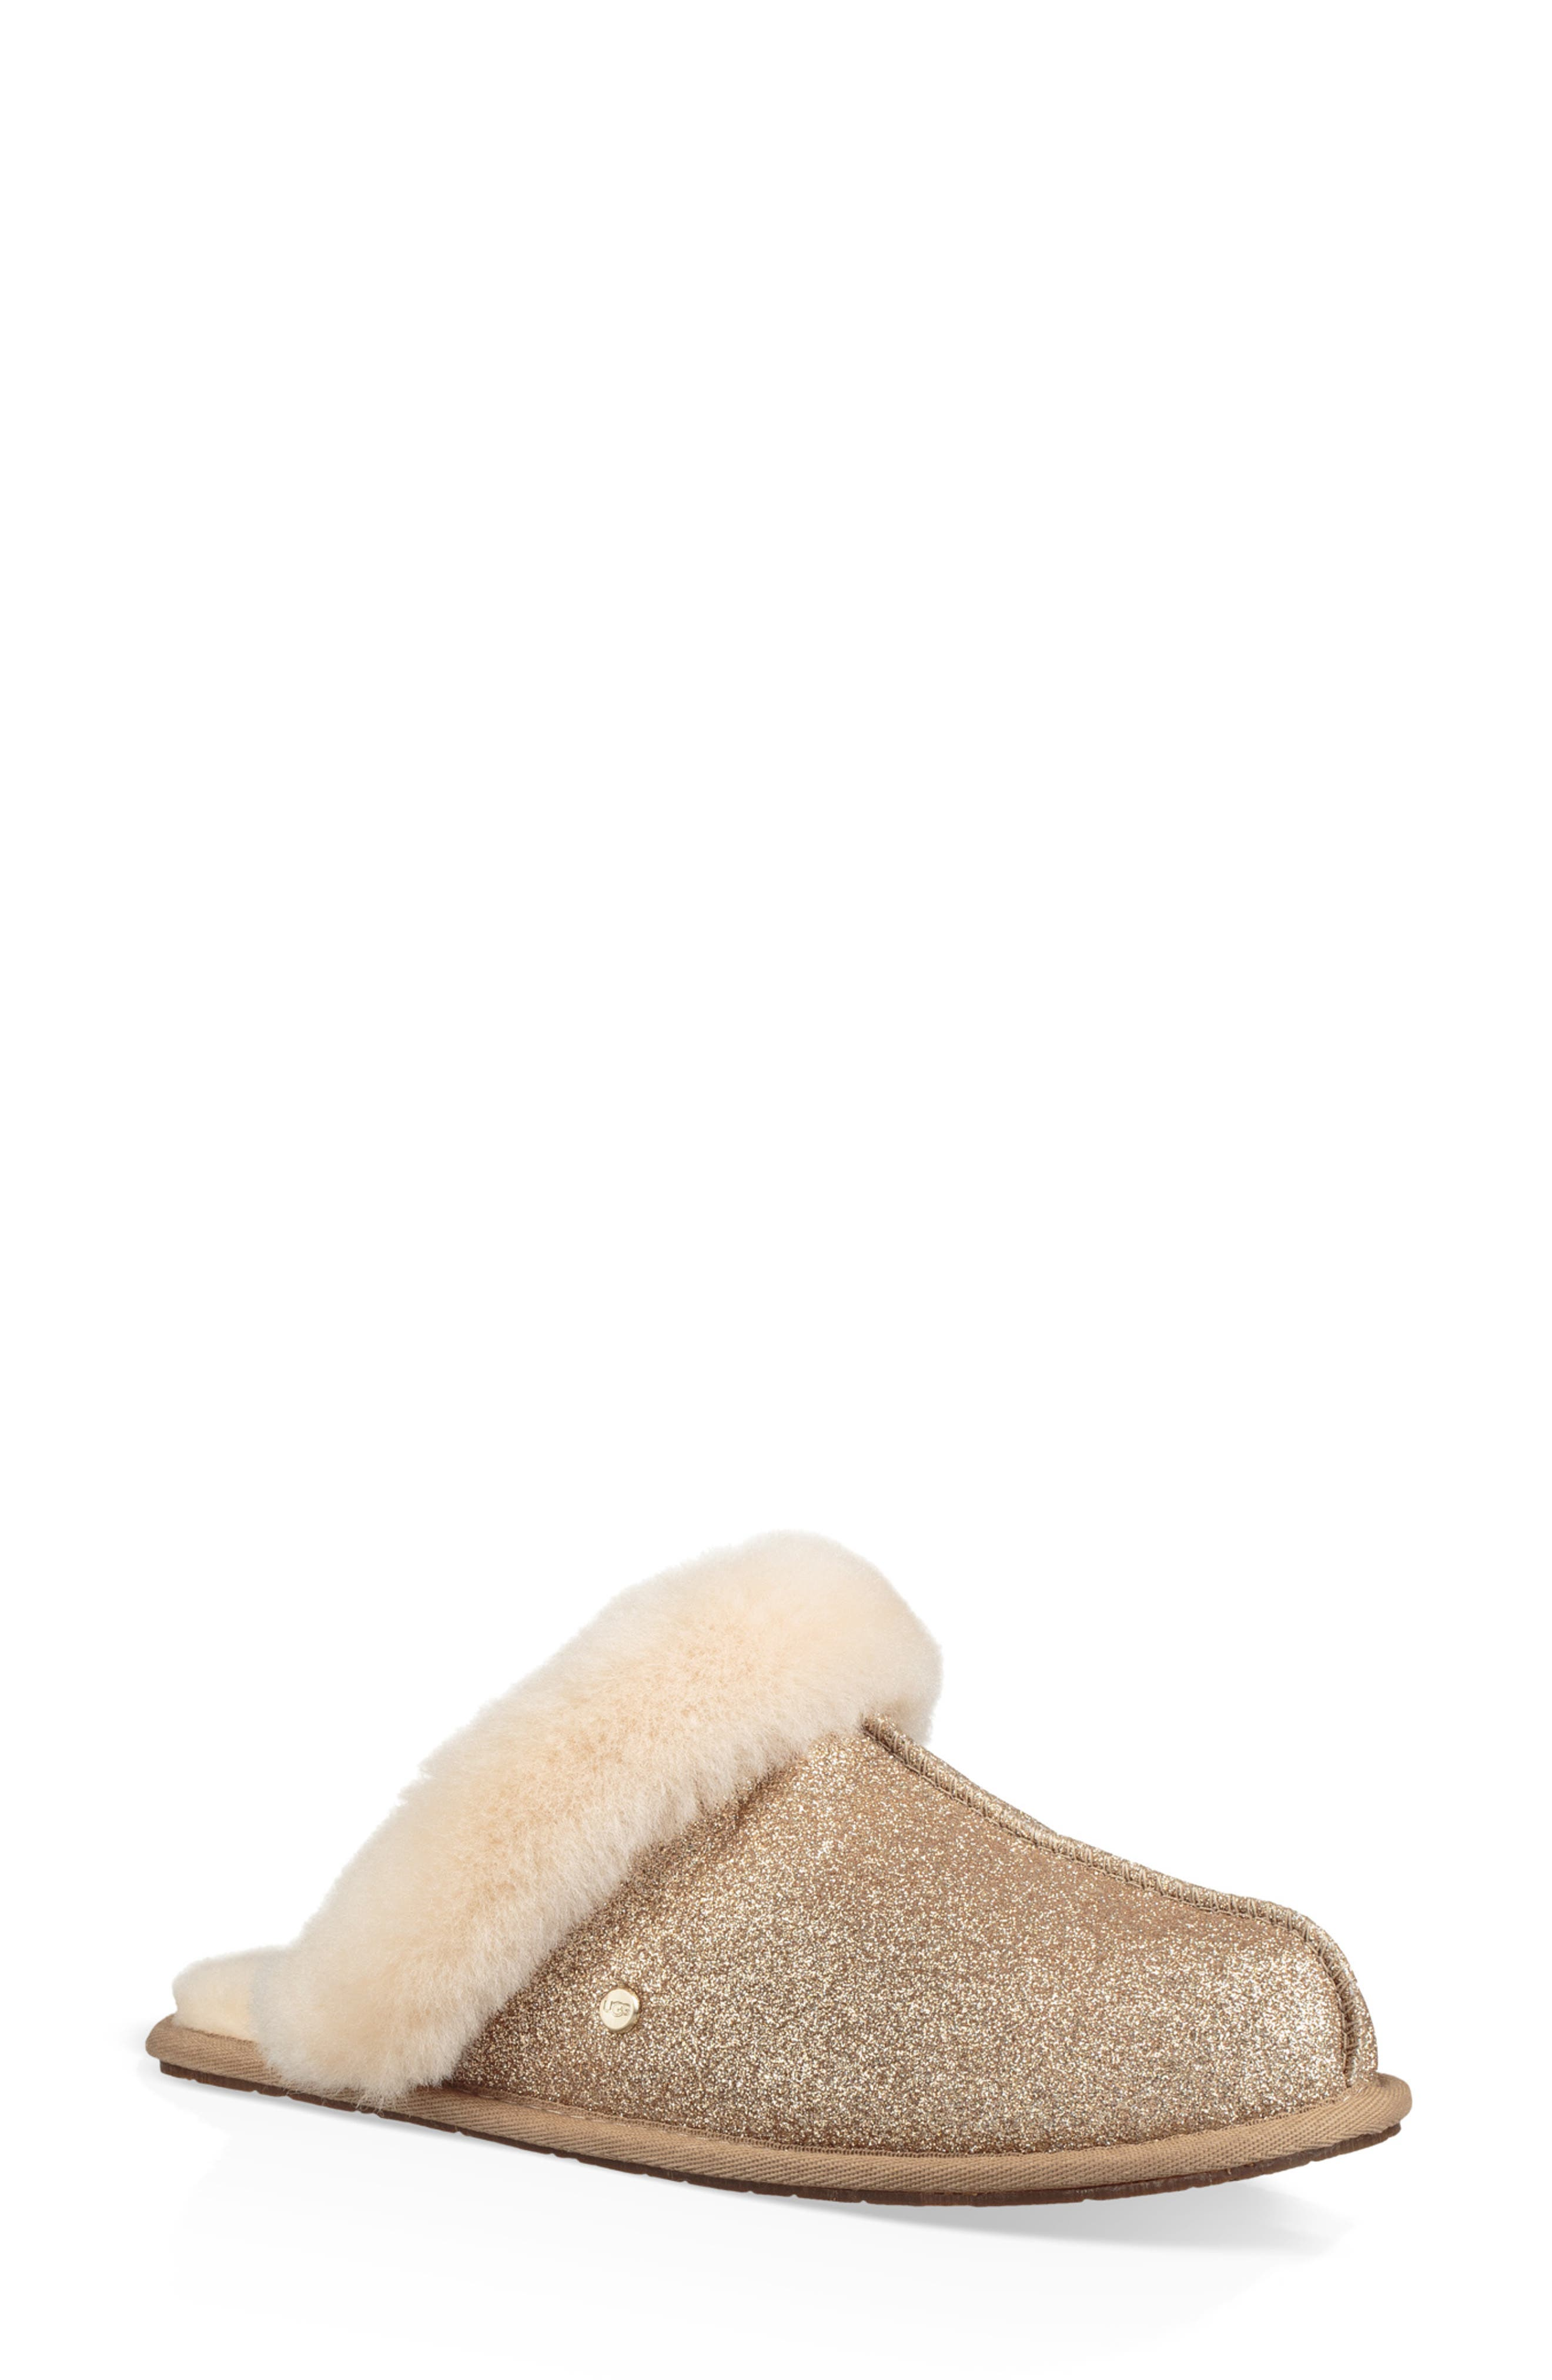 UGG<SUP>®</SUP>, Scuffette II Sparkle Genuine Shearling Slipper, Main thumbnail 1, color, GOLD